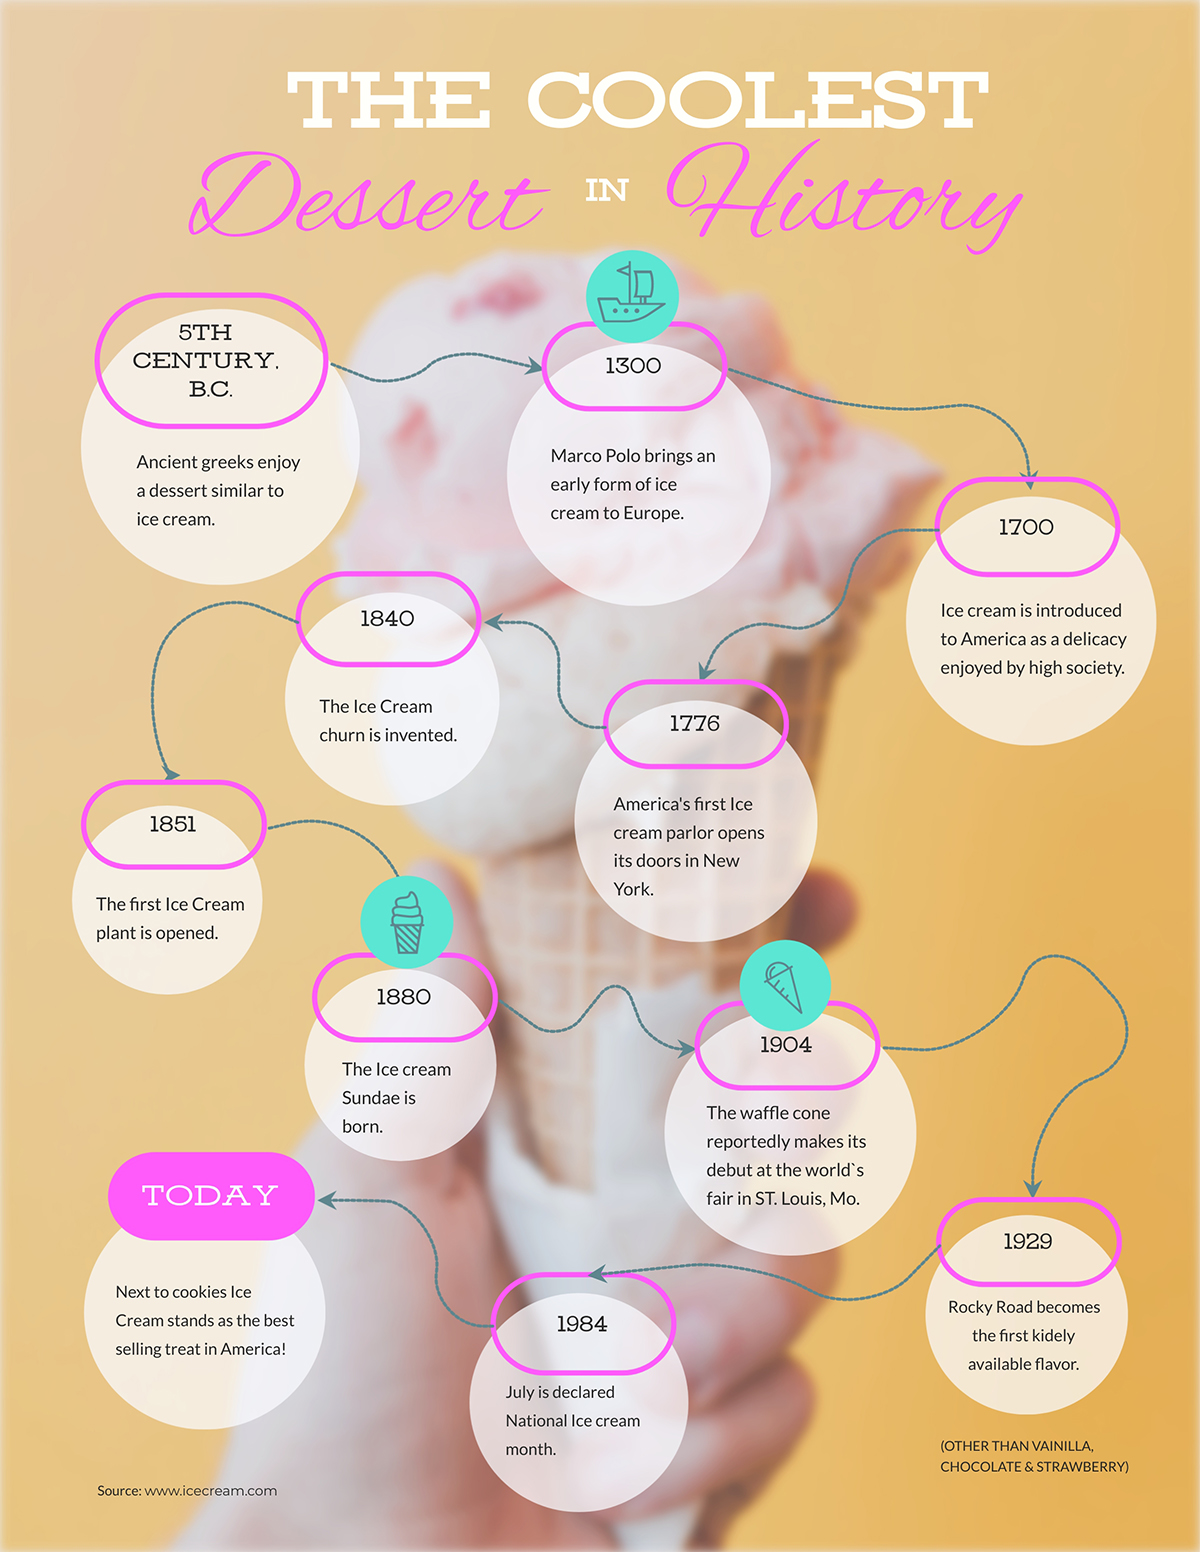 Timeline template showcasing the history of ice cream.